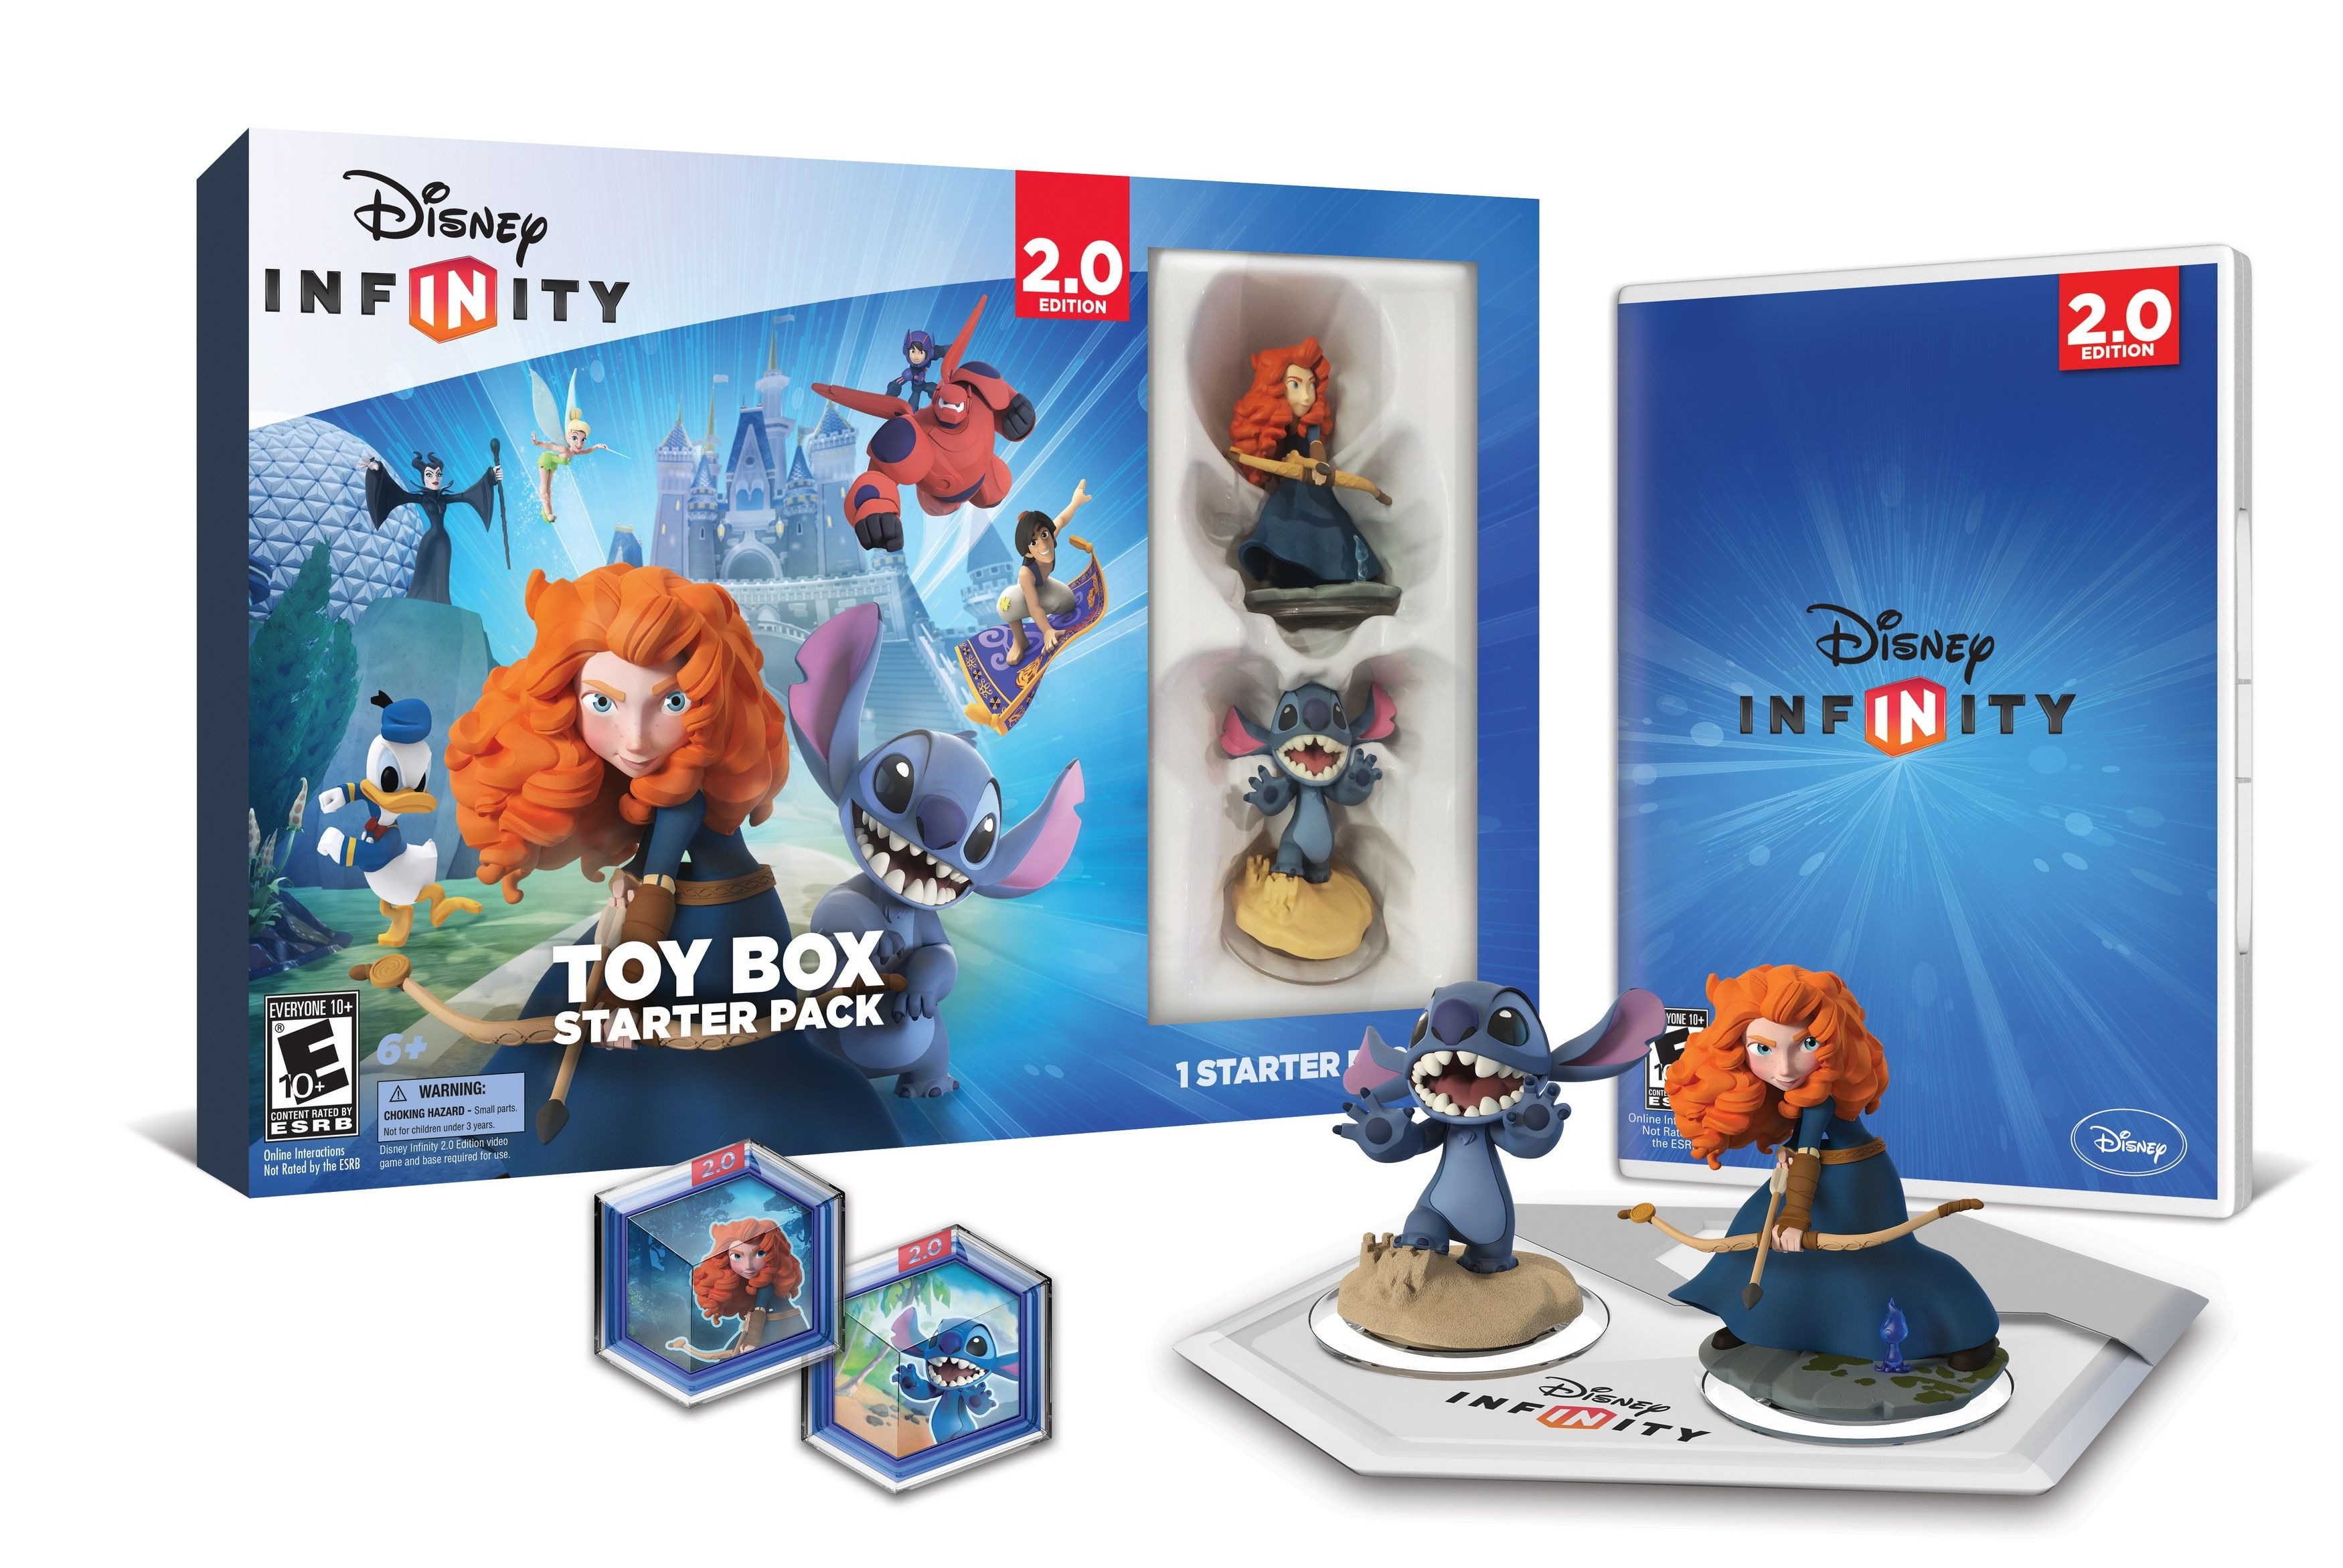 Special Disney Themed Disney Infinity Toy Box Starter Pack Is Set To Launch On November 4 2014 The Disney Infinity Toy B Disney Infinity Disney Figures Wii U